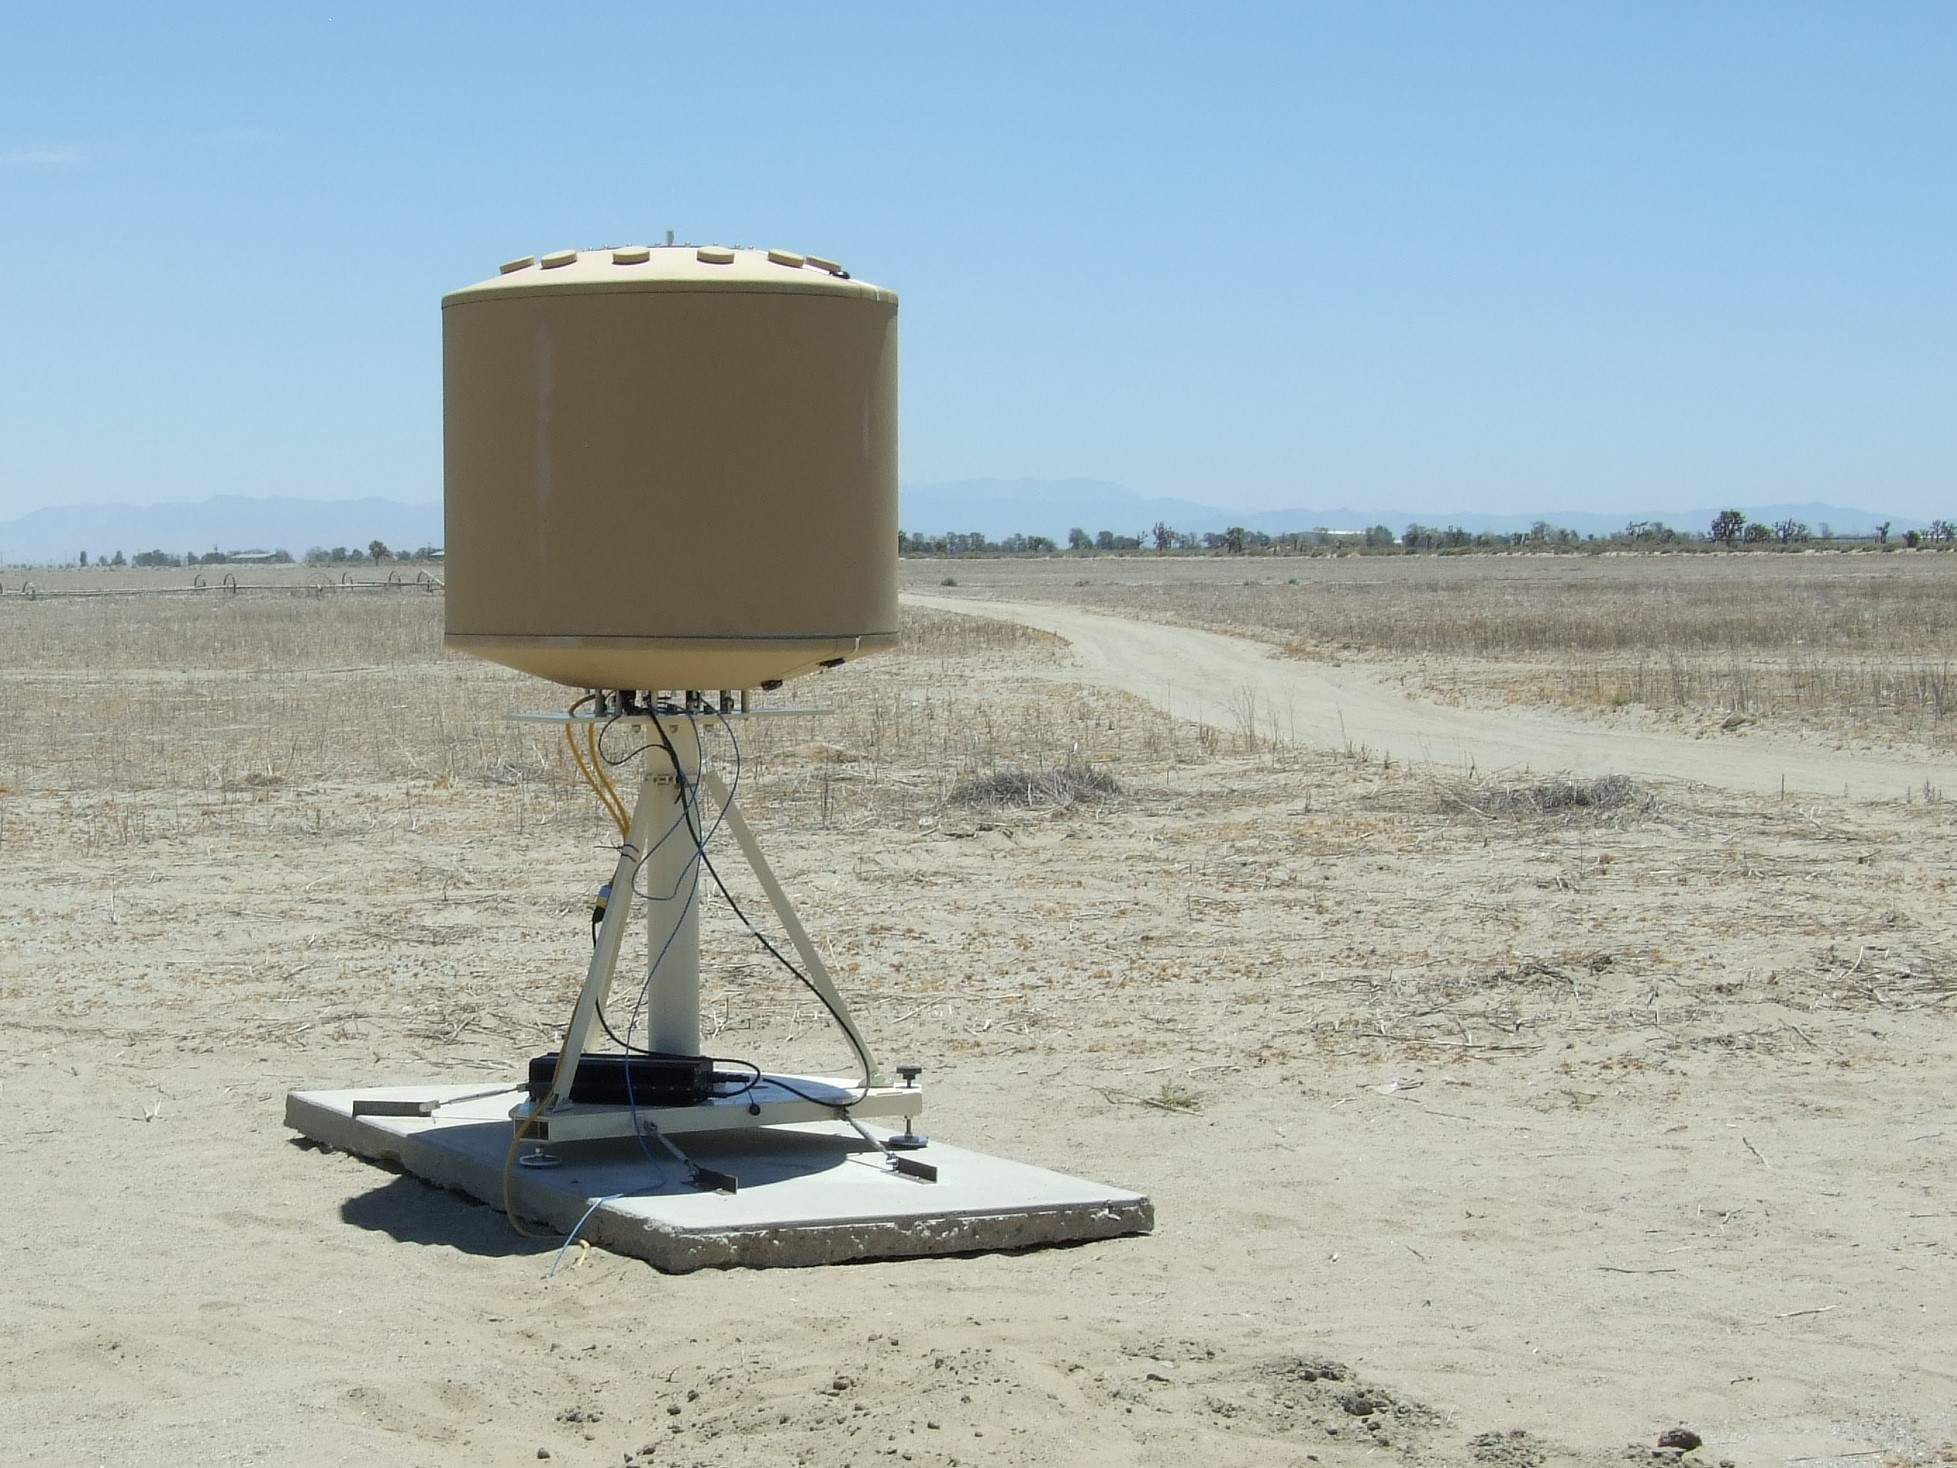 SRC's AN/TPQ-49 radar with LSTAR software in a rugged tan enclosure in front of a rugged desert landscape